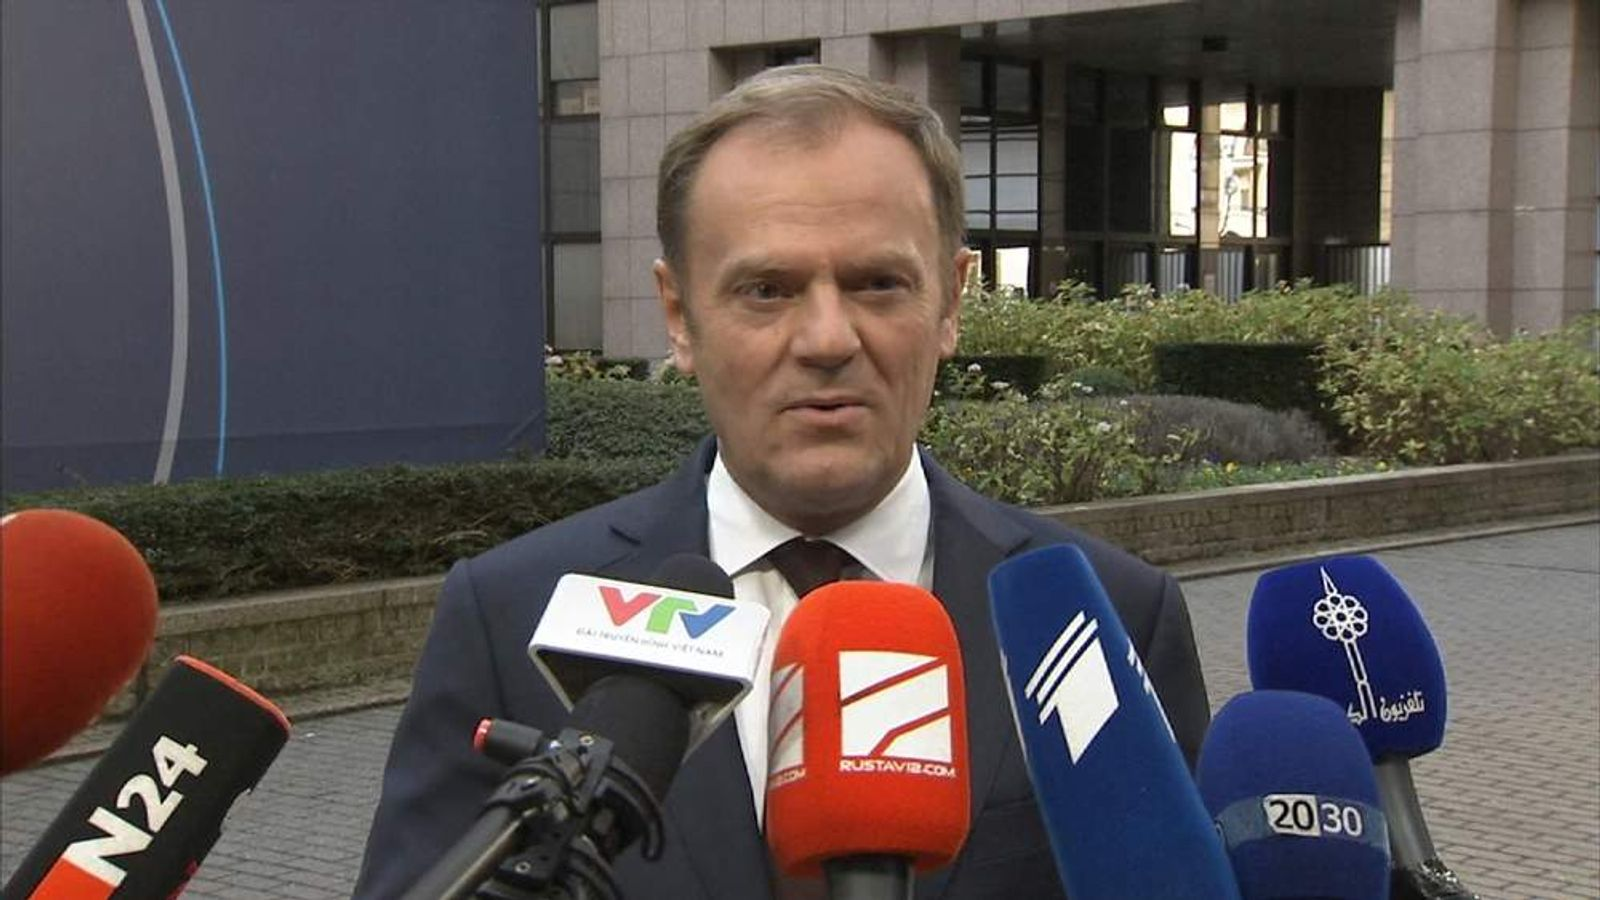 European Council President Donald Tusk talking about EU reform